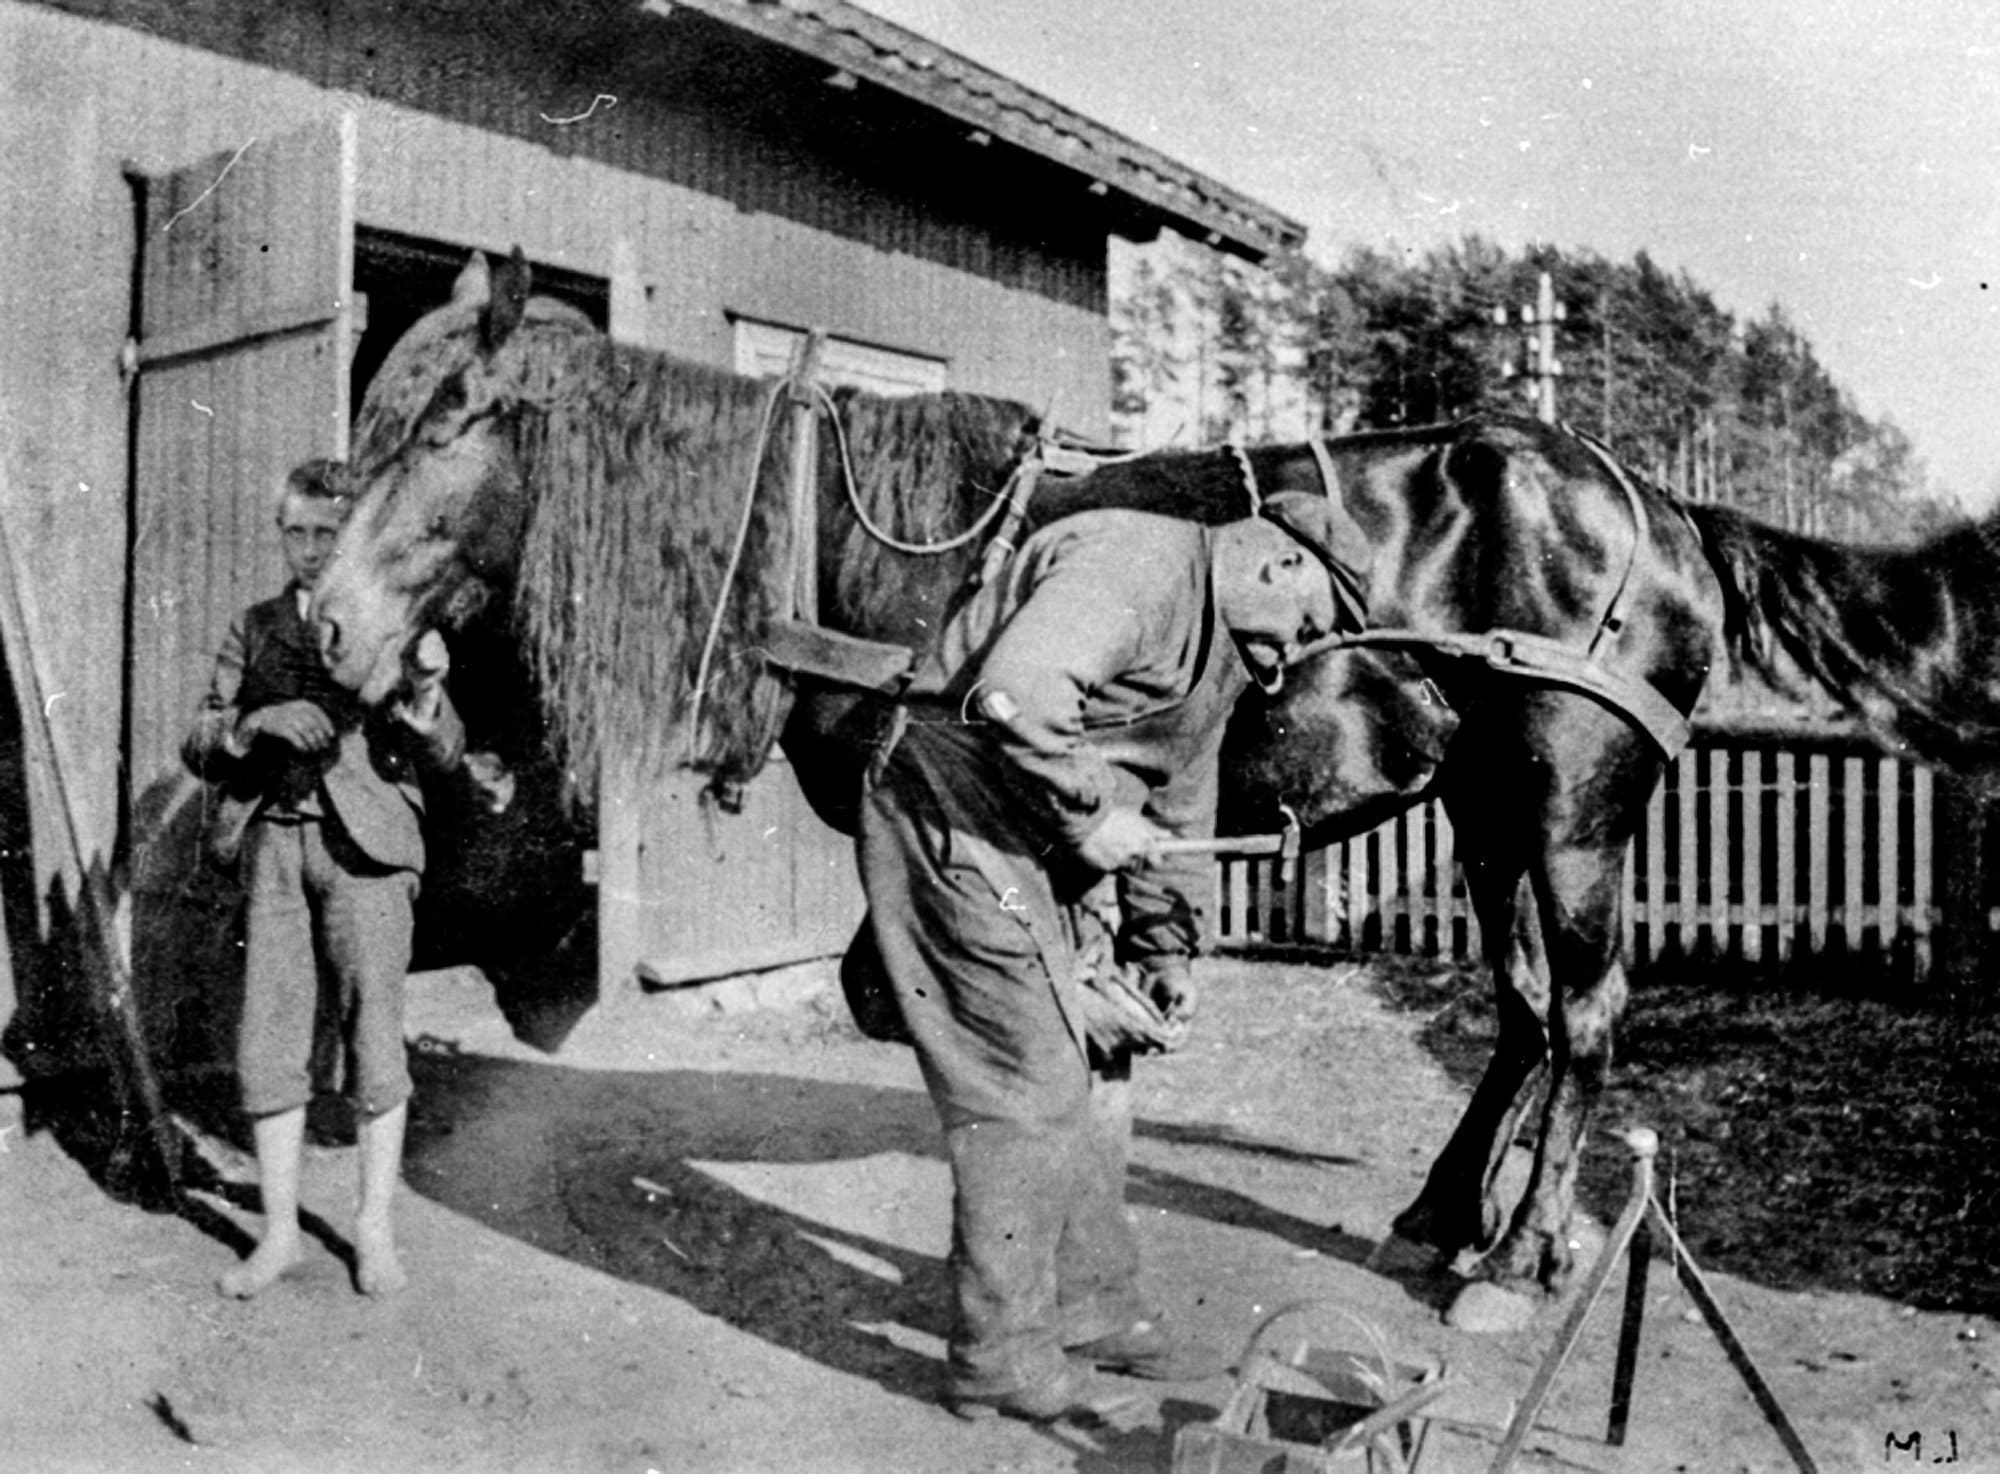 Ole Larsen is shoeing a Norwegian Dole horse. A barefoot Martinius Larsen is holding the horse. The location is Brumunddal, Ringsaker, Hedmark. | Photo by Unknown - digitaltmuseum.no 0412-07770 - Public domain.